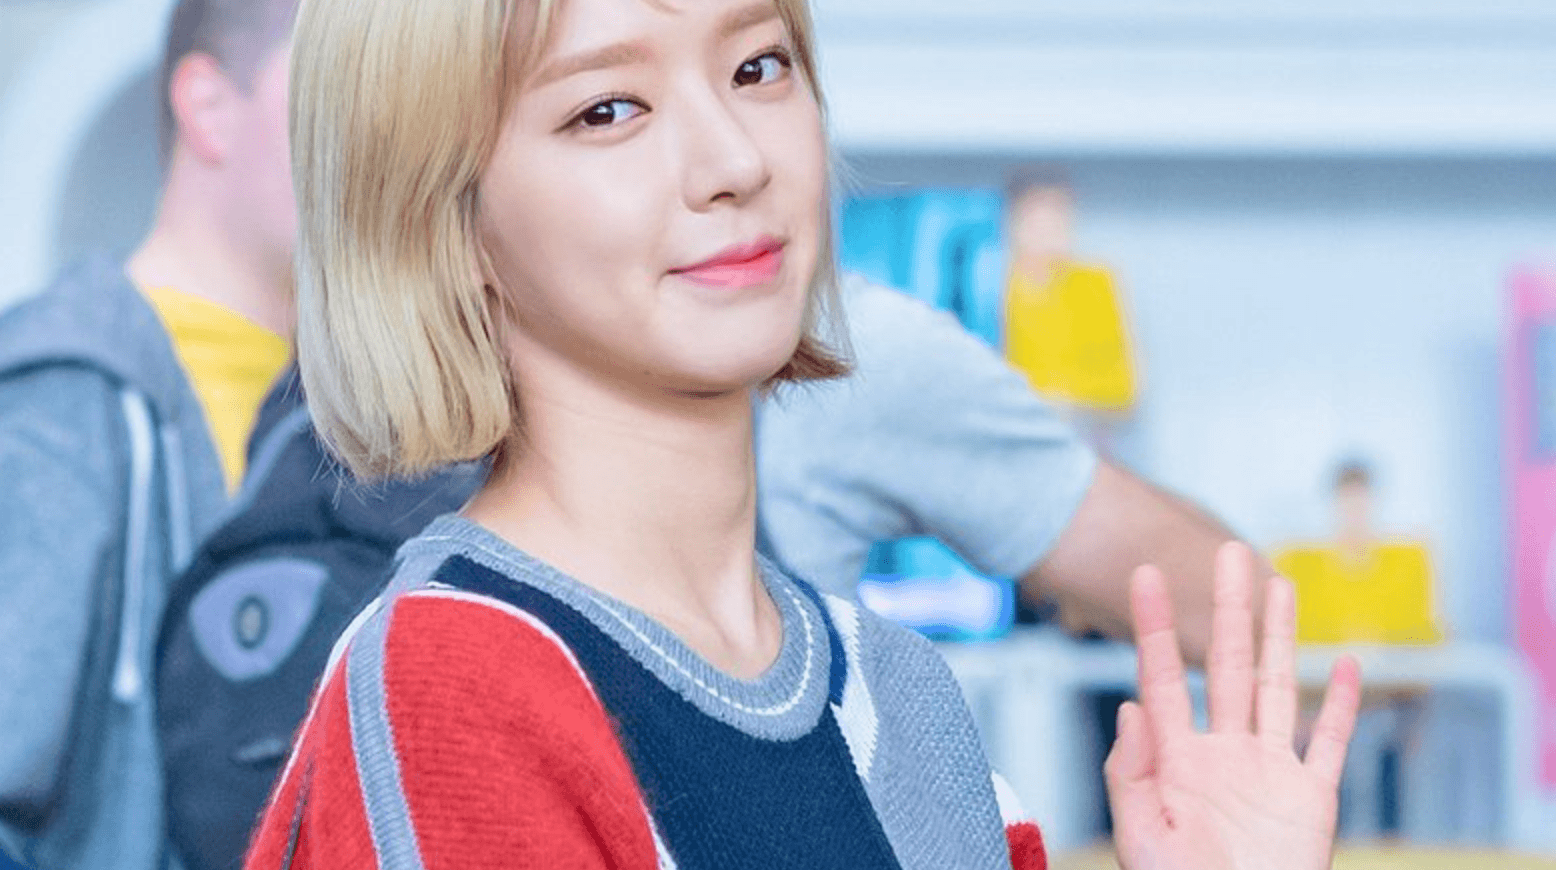 [★BREAKING] Choa personally requested break from AOA